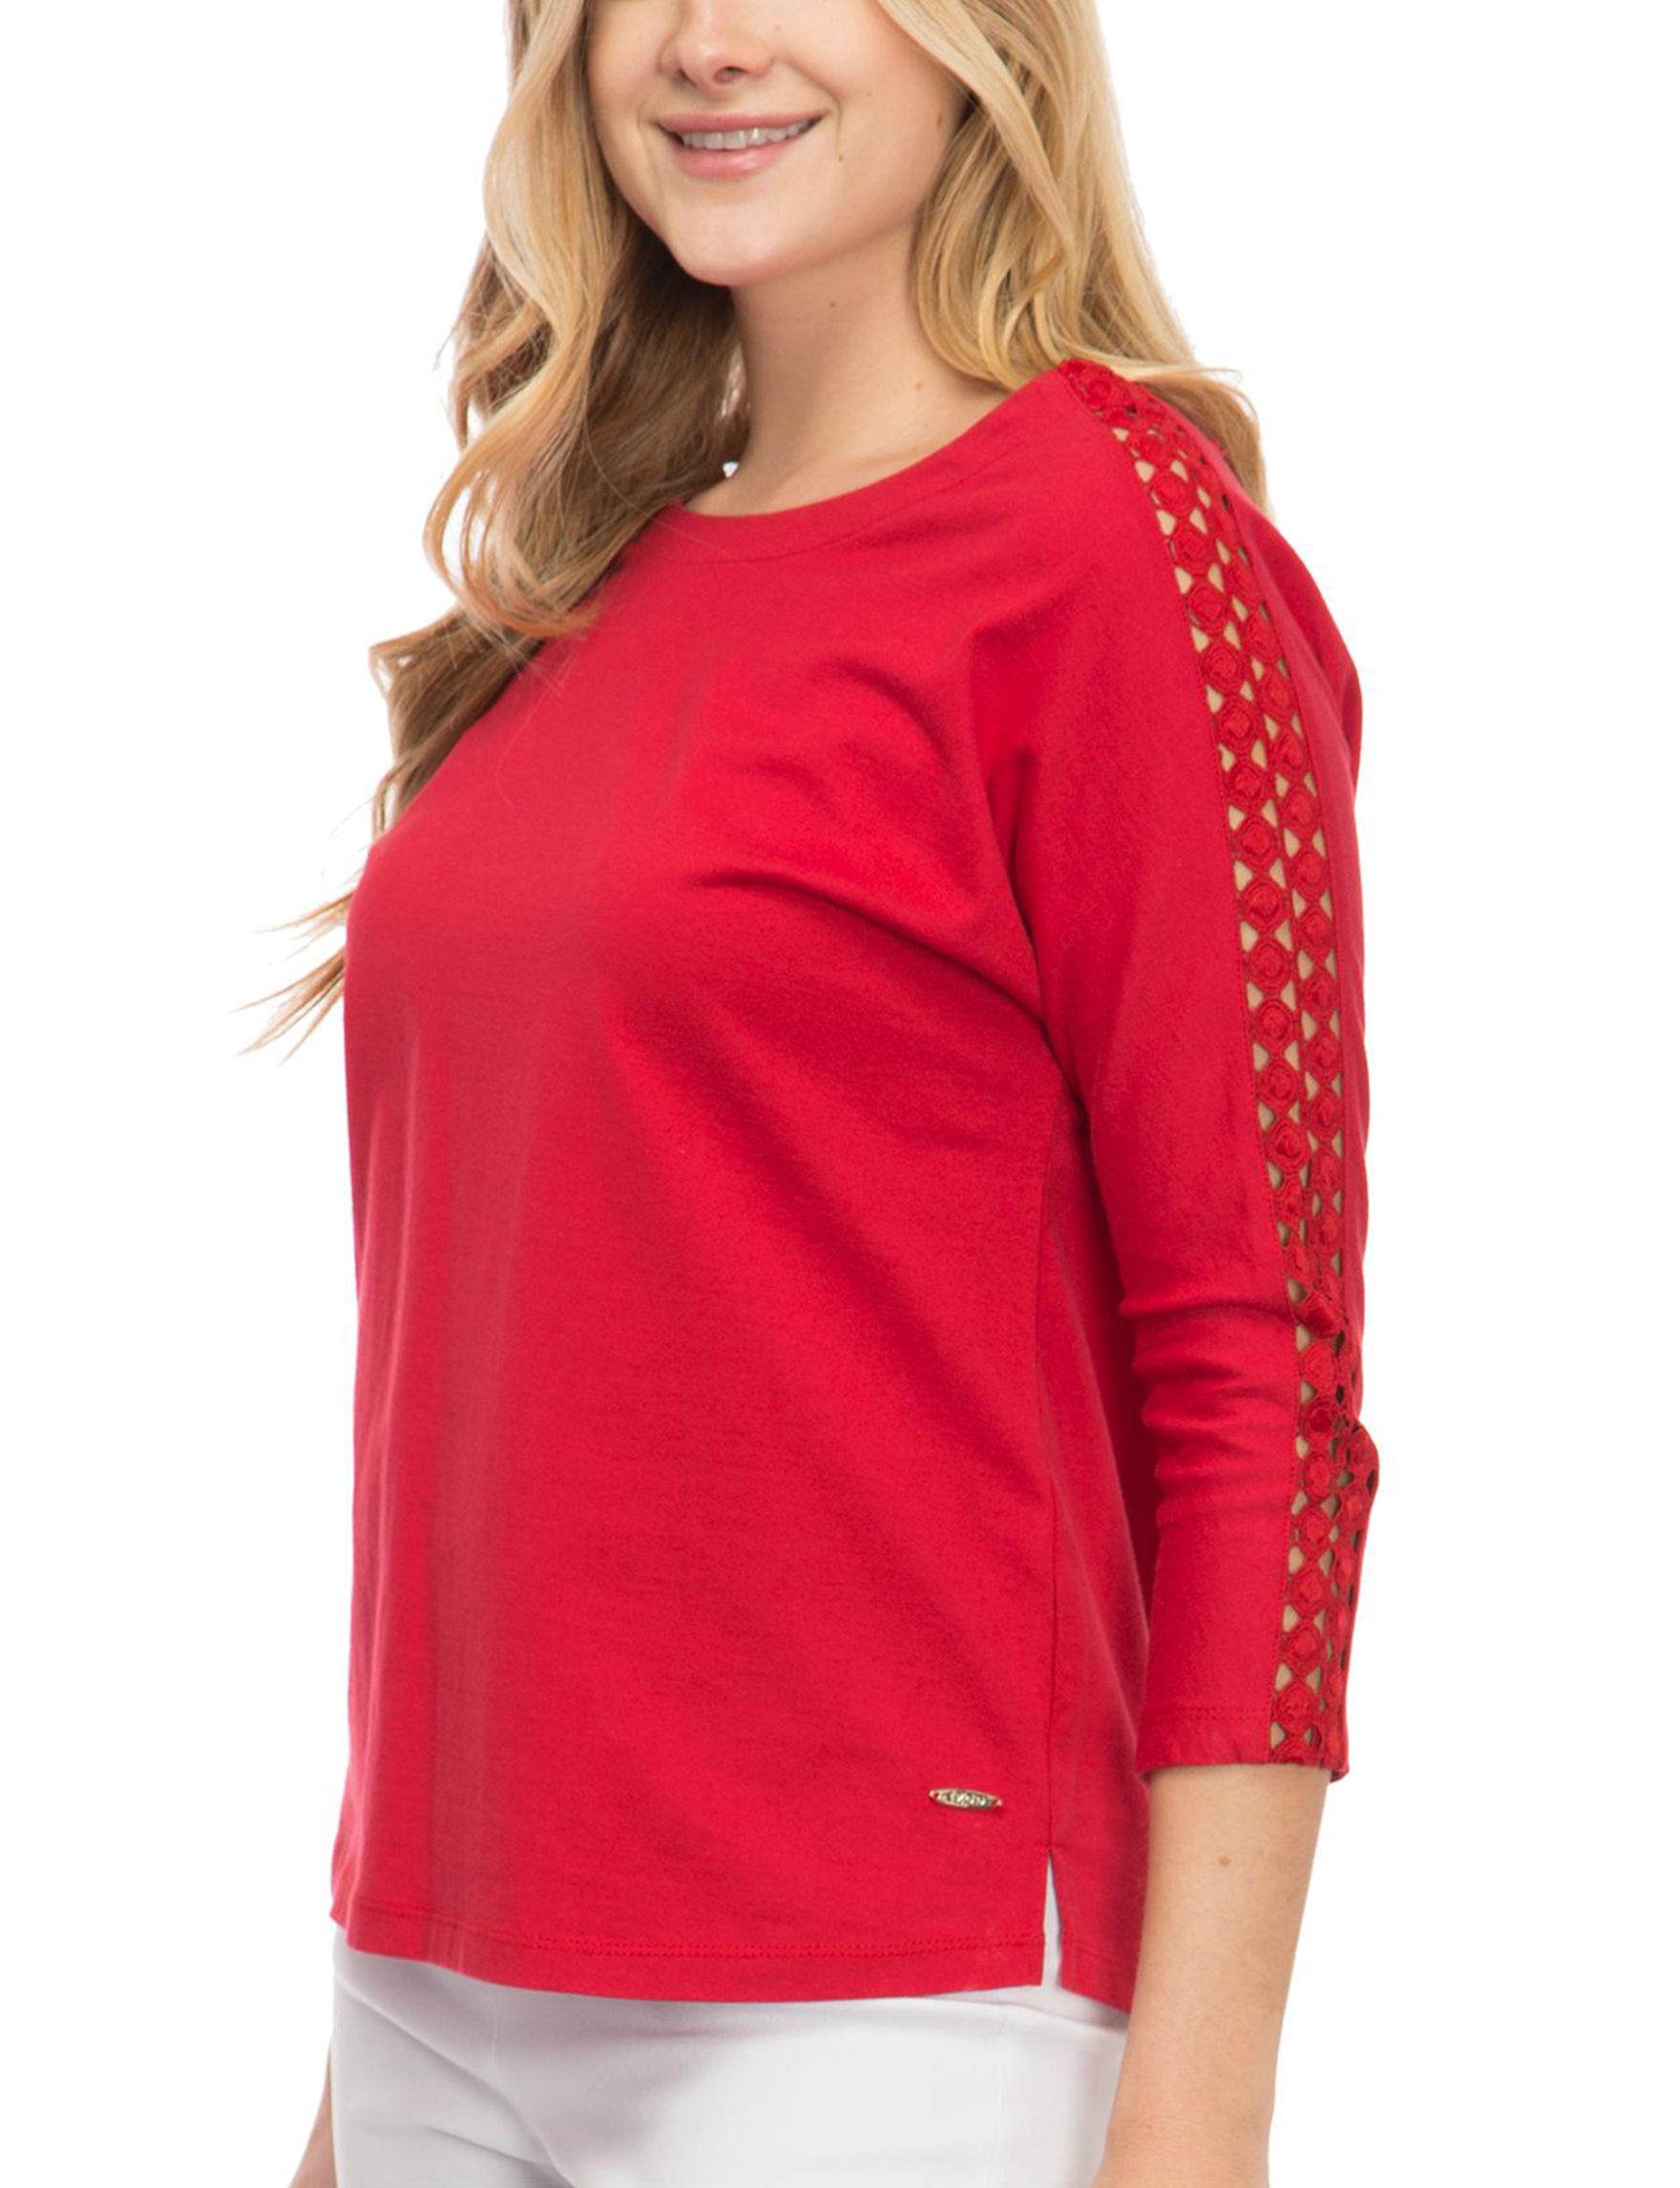 Izod Red Shirts & Blouses